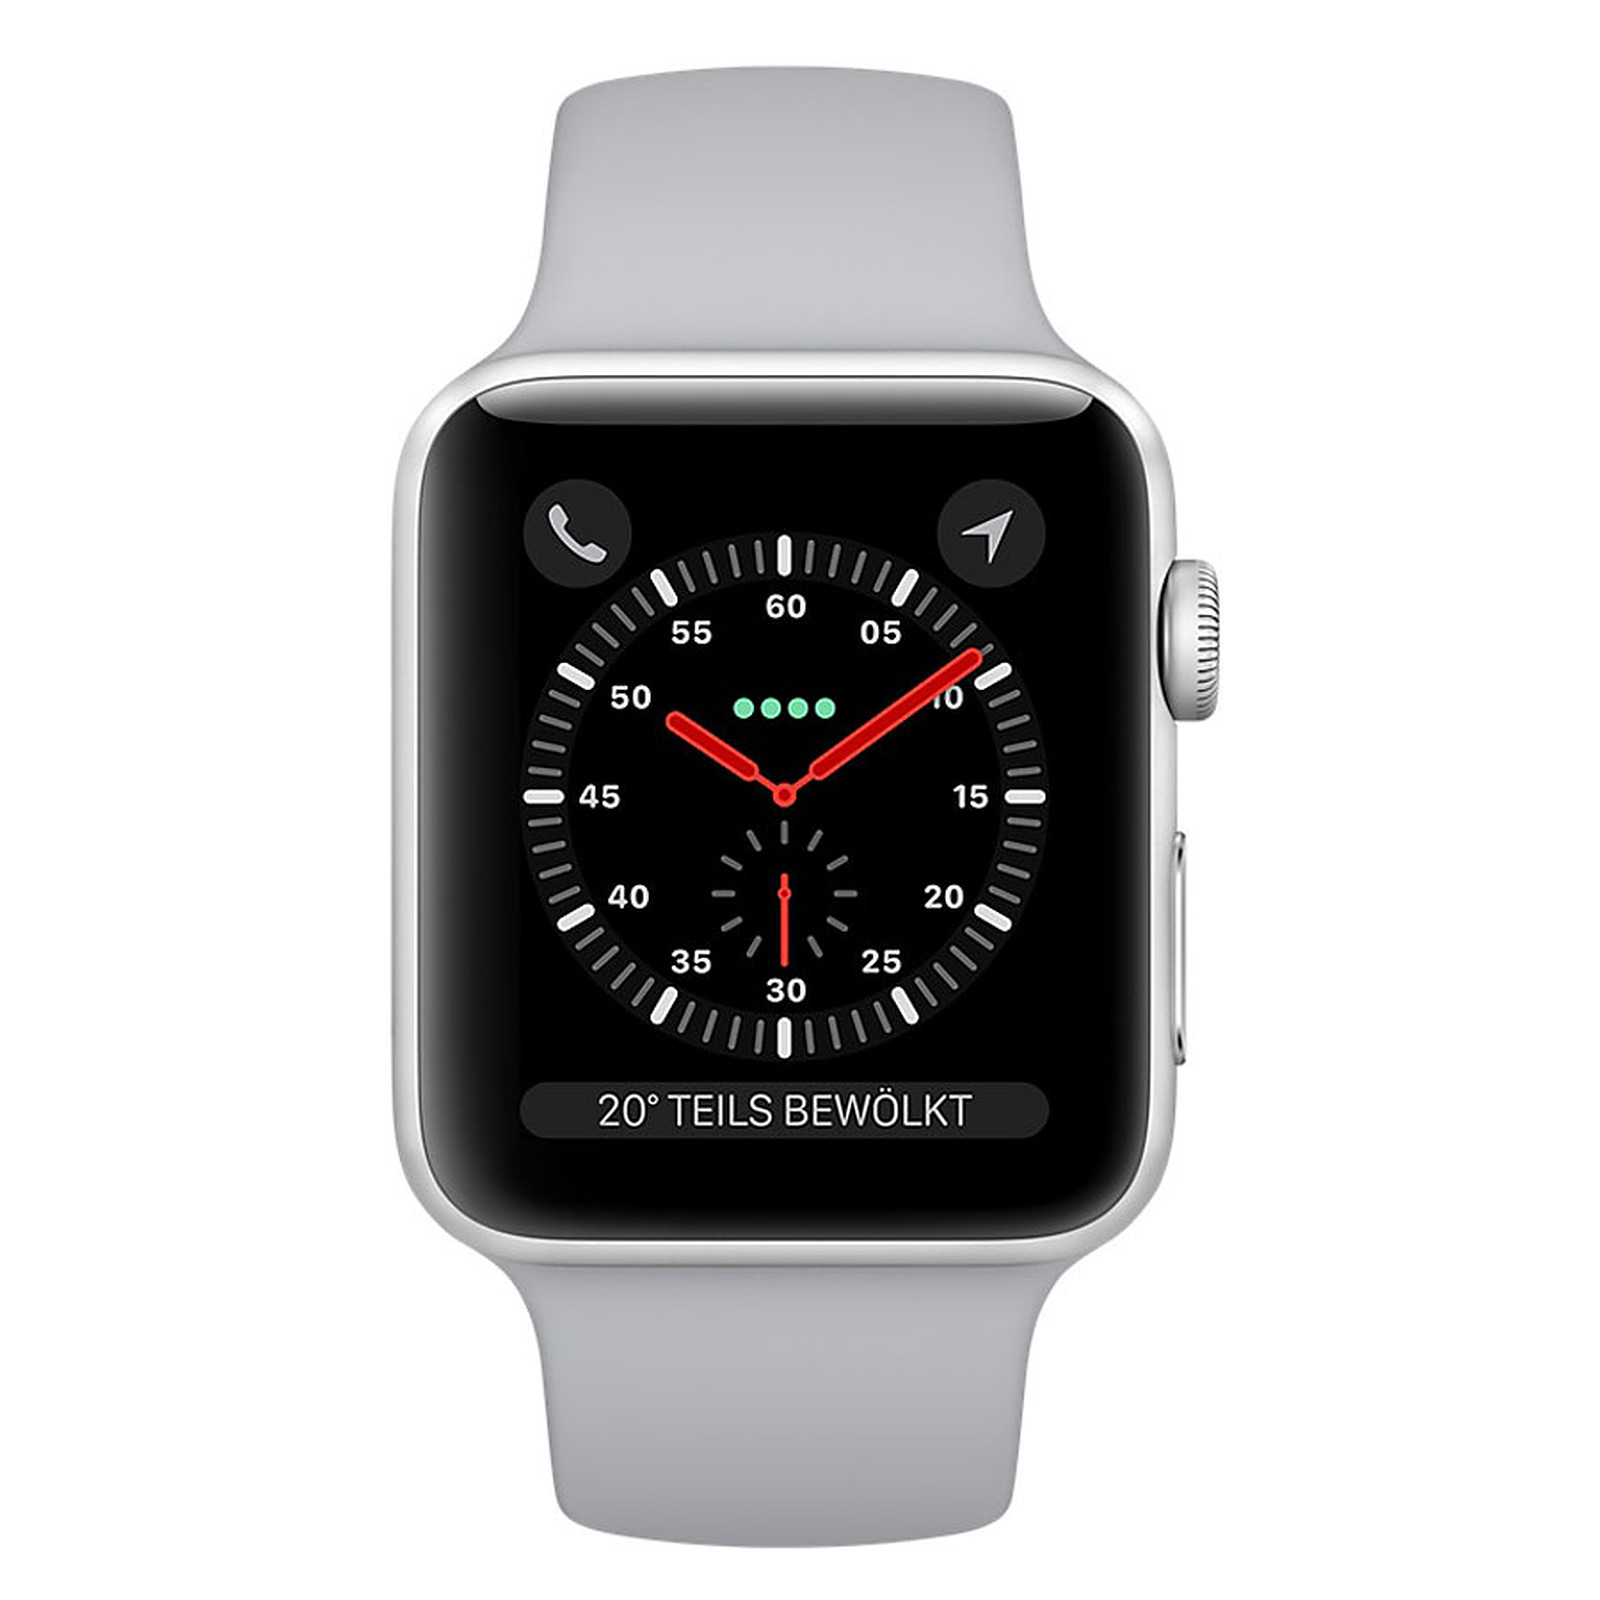 28874b2b6acfc Apple Watch Series 3 GPS + Cellular Aluminium Argent Sport Nuage 42 mm  Montre connectée - · Montre connectée ...